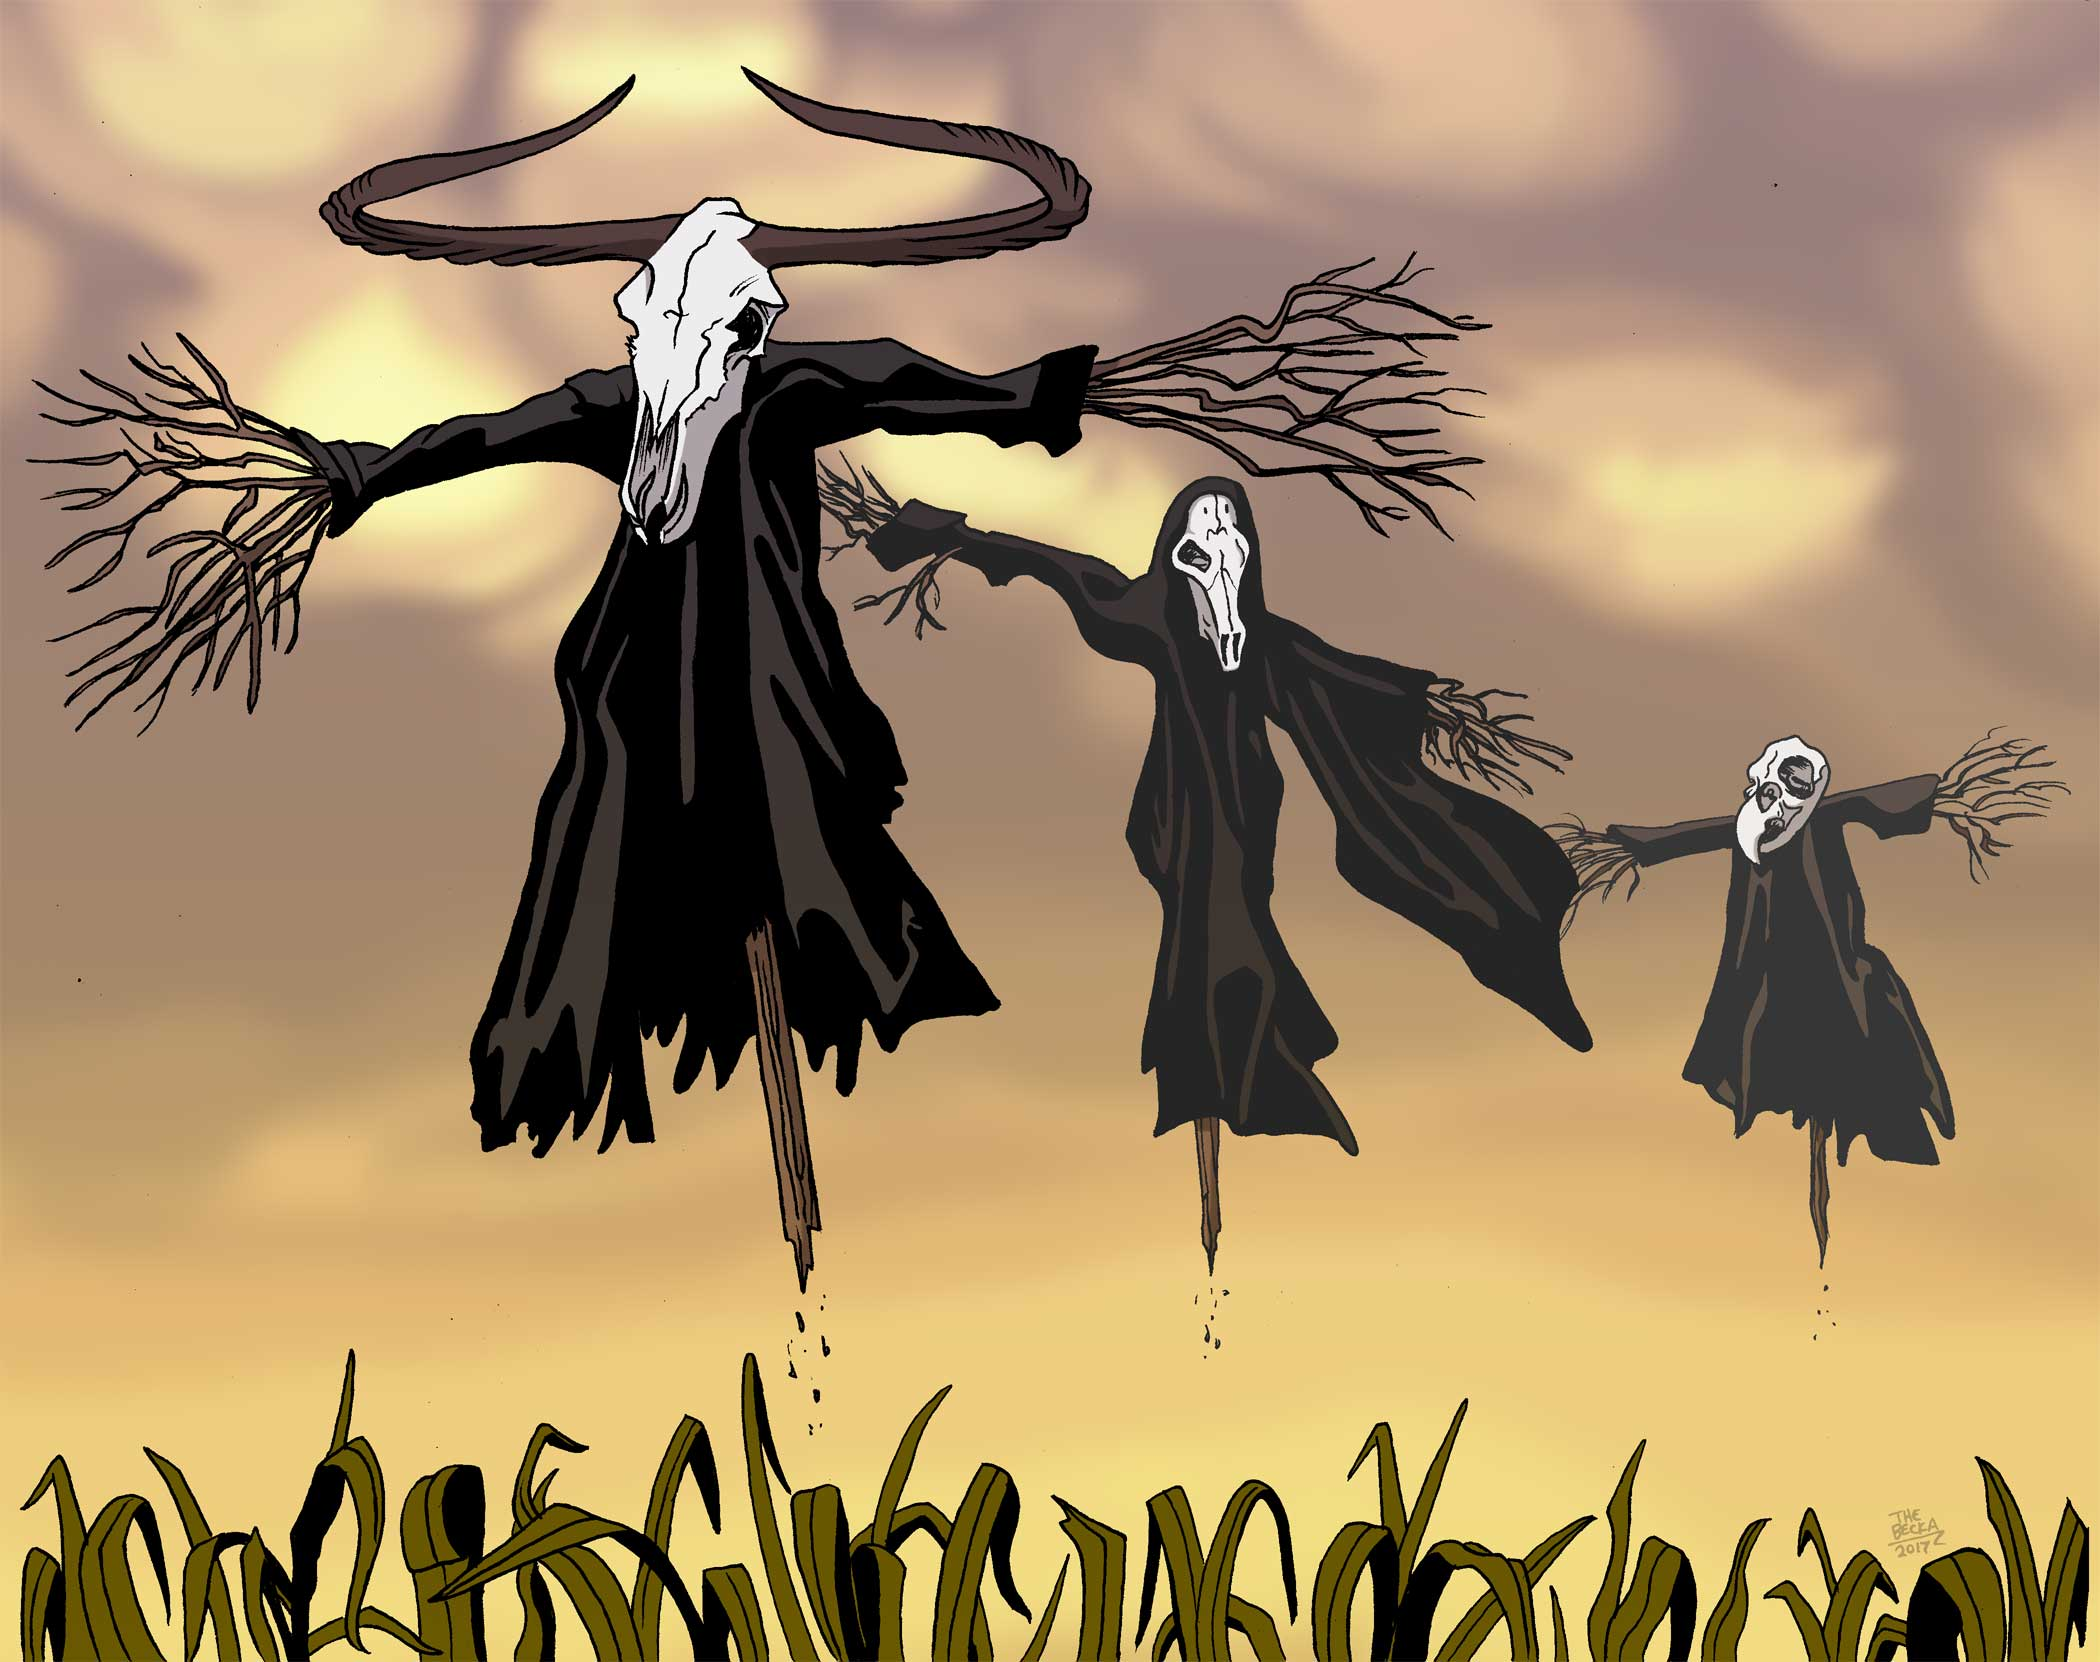 The Floating Scarecrows